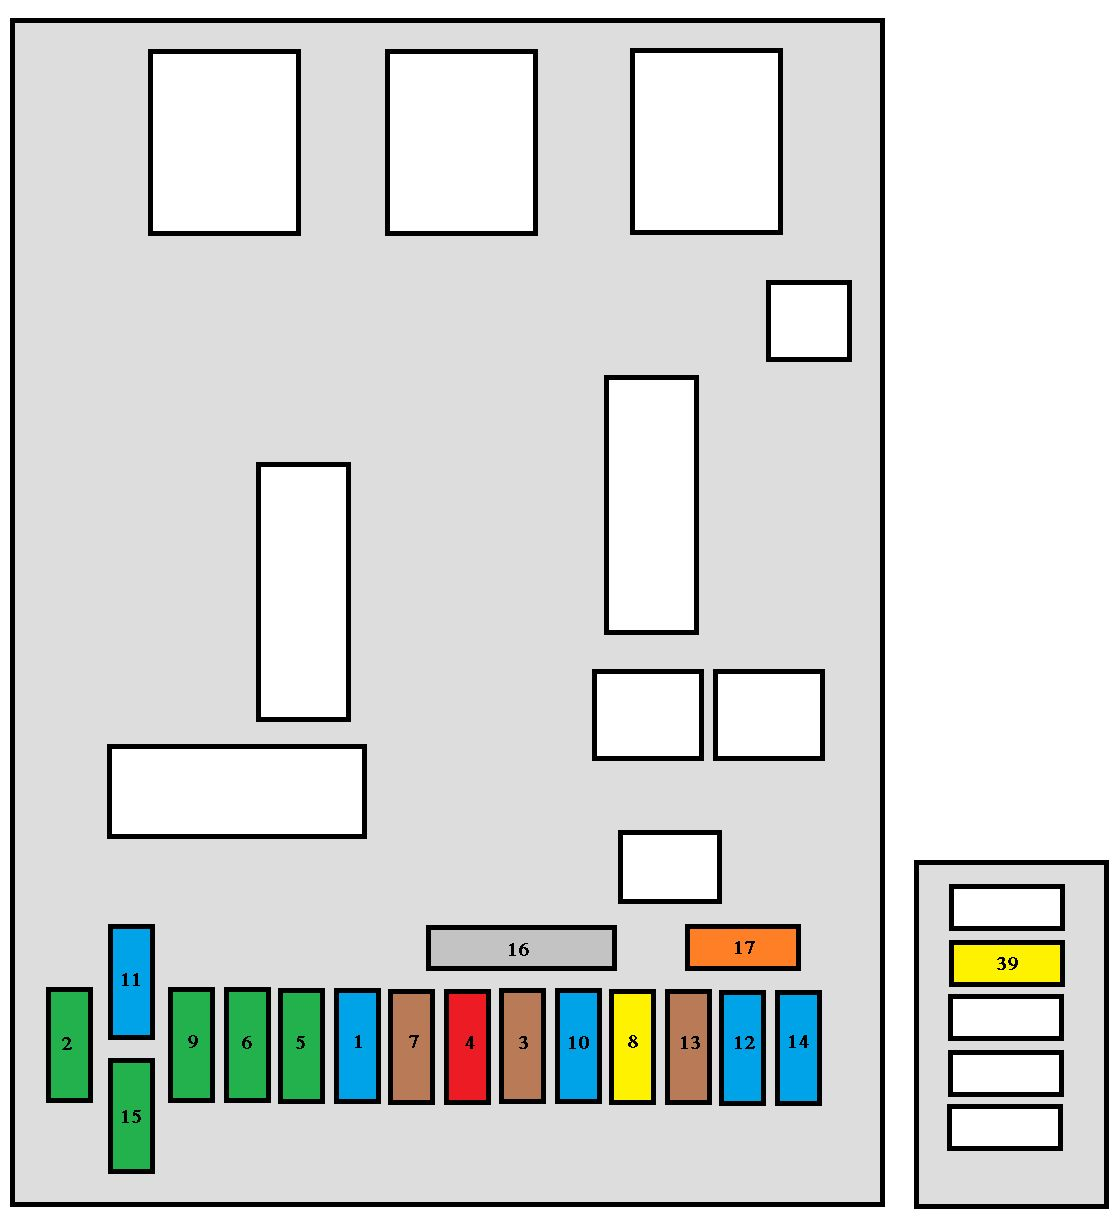 Peugeot 307 2005 2008 Fuse Box Diagram Auto Genius 2006 Mercedes Benz A Series